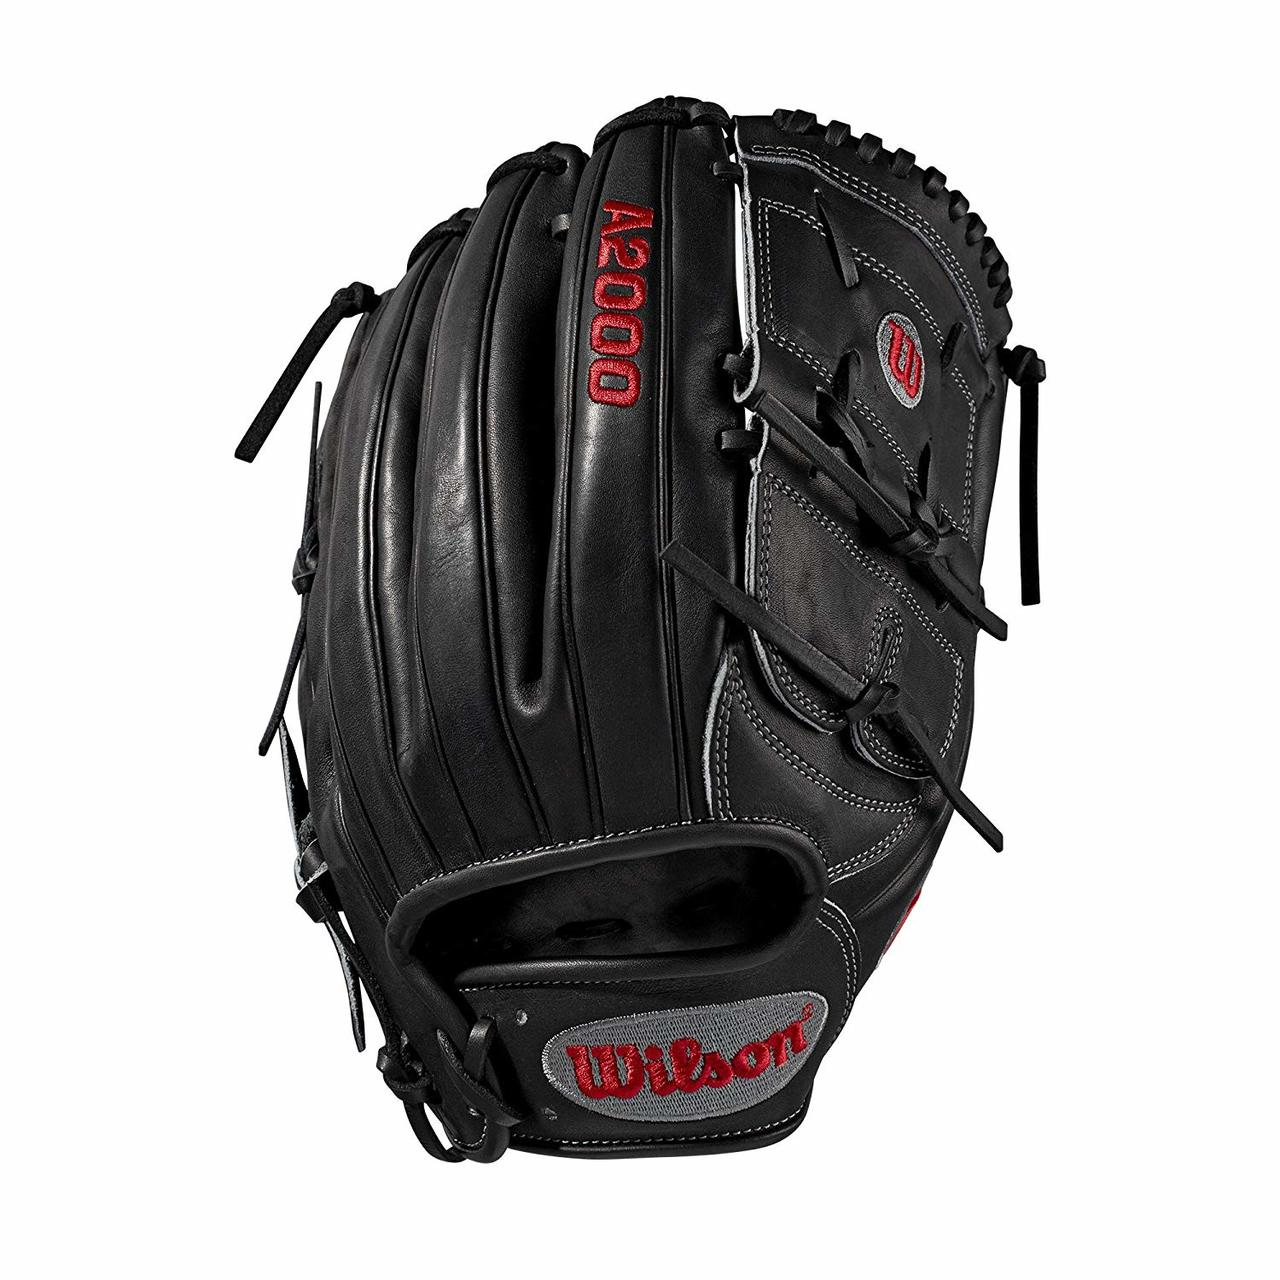 12 inch pitcher's glove Pitcher WTA20RB19B125 Two-piece web Black Pro Stock leather, preferred for its rugged durability and unmatched feel Dual welting for a durable pocket and long-lasting break-in